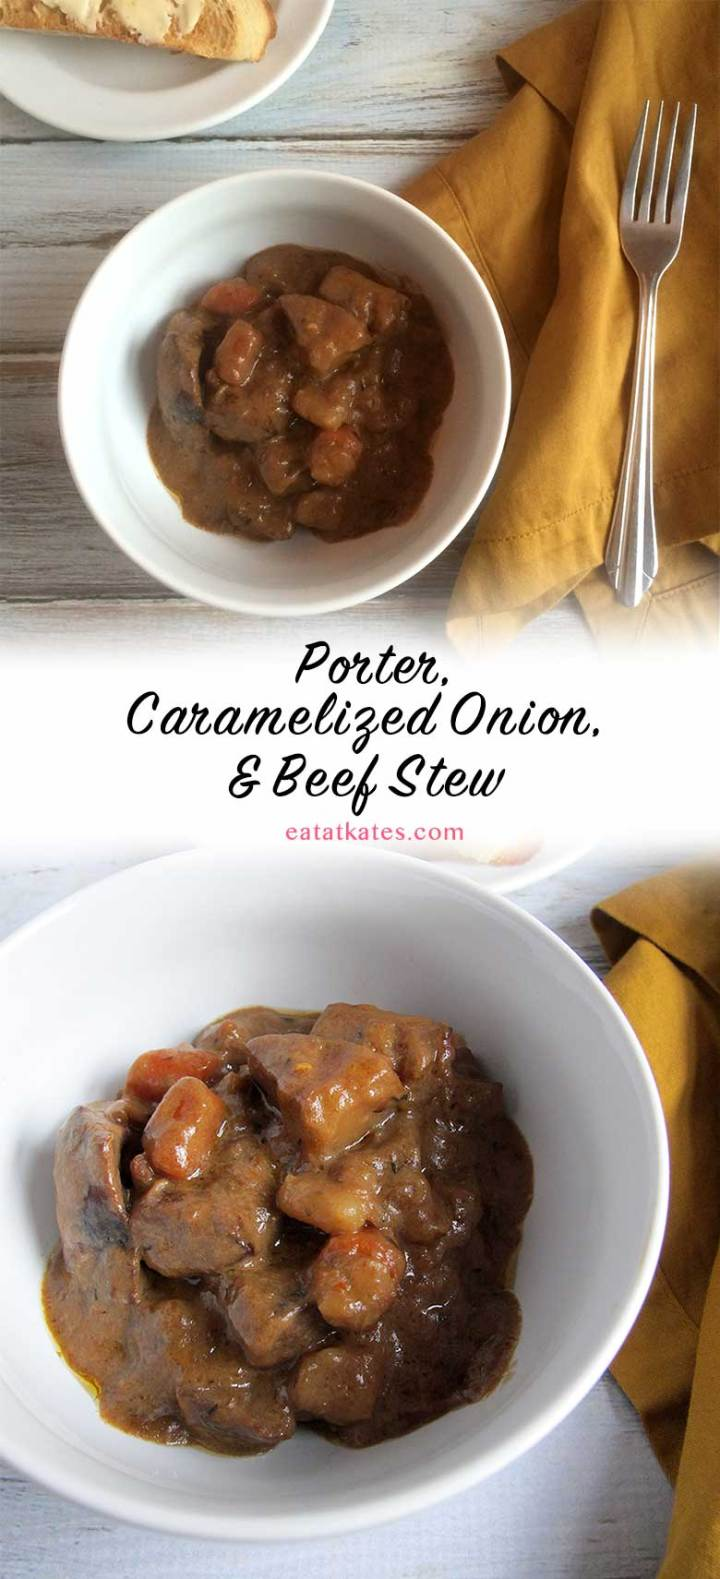 bPorter, Caramelized Onion, & Beef Stew | eatatkates.com | This delicious, savory beef stew takes a few simple ingredients and let's them hang out for a few hours to create a fantastic, comforting dish that will get you through the remaining days of winter.